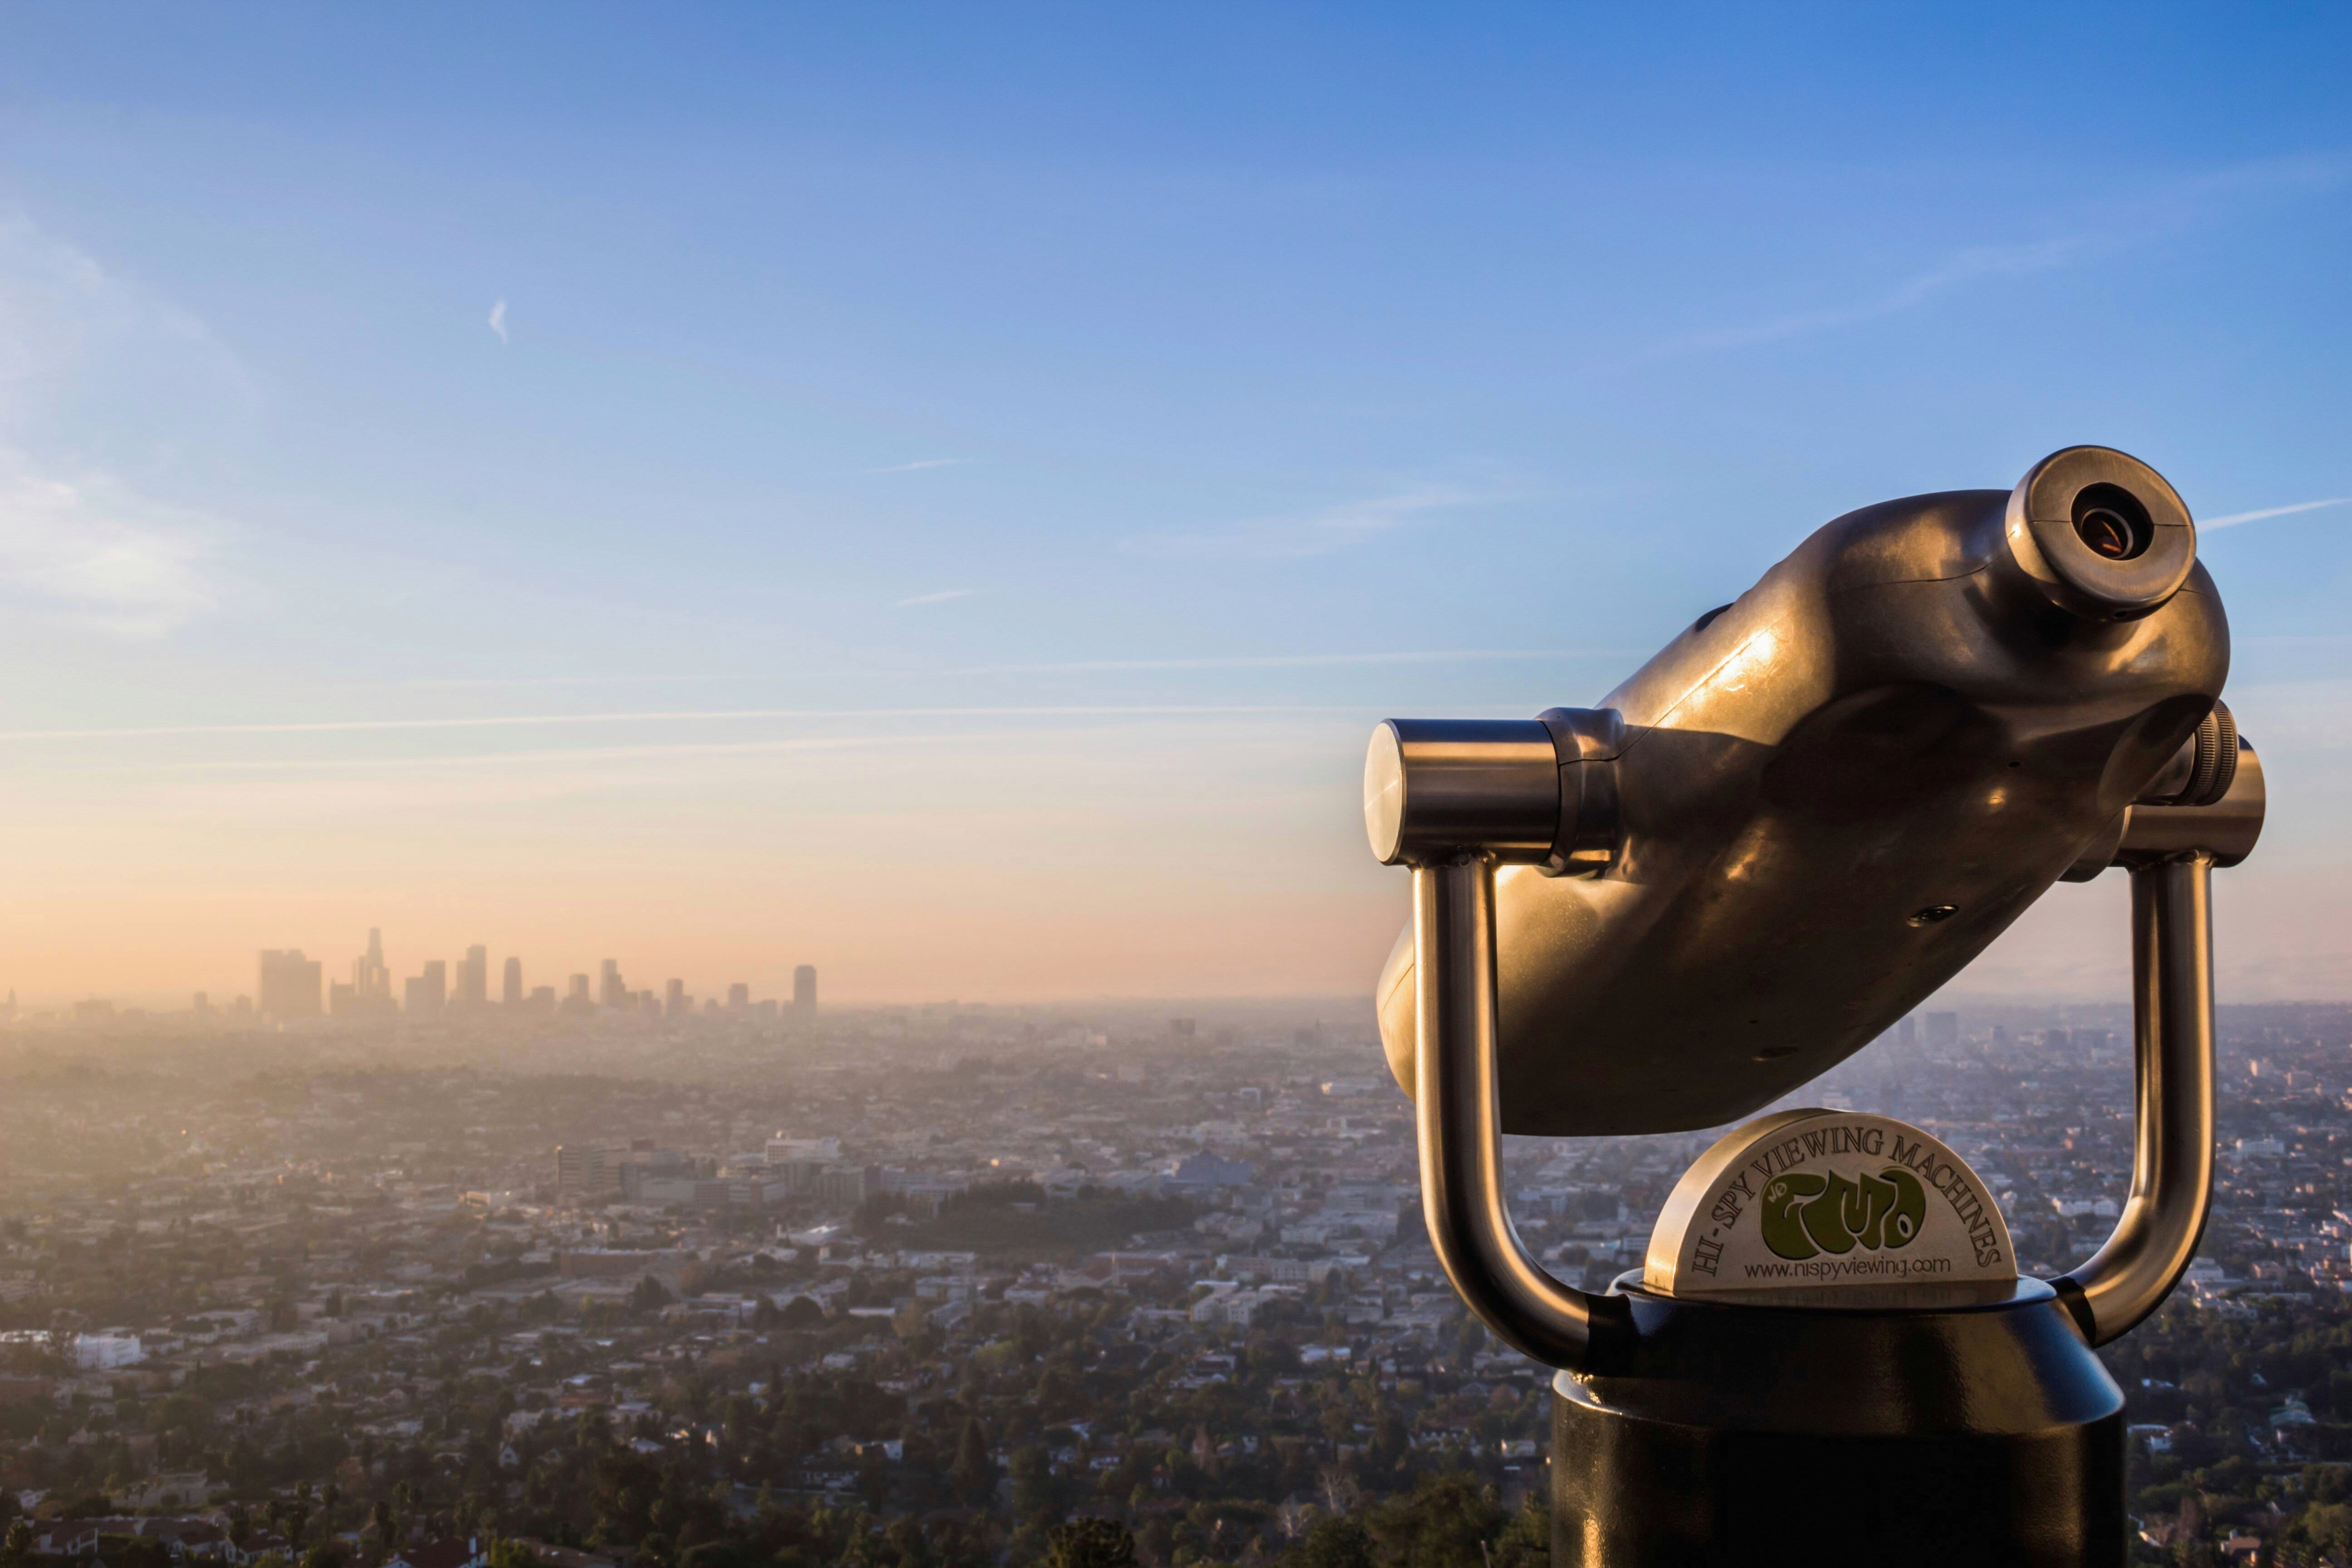 Viewfinder looking out over a cityscape